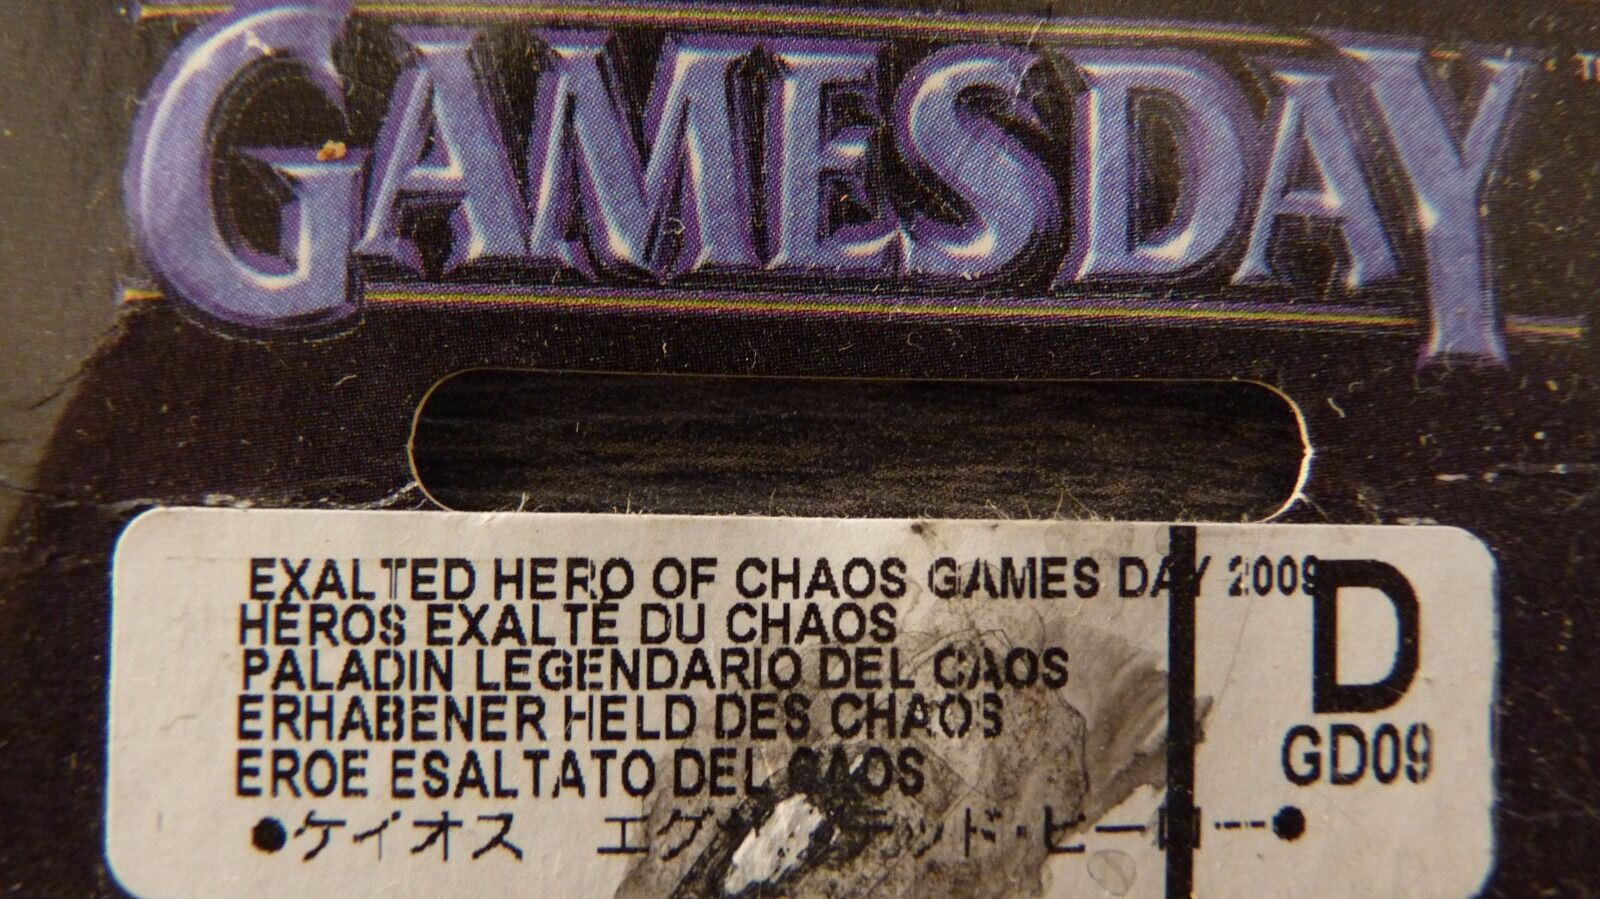 WARHAMMER FANTASY LIMITED EDITION GAMES GAMES GAMES DAY 2009  EXALTED HERO OF CHAOS MIB RARE 52e626